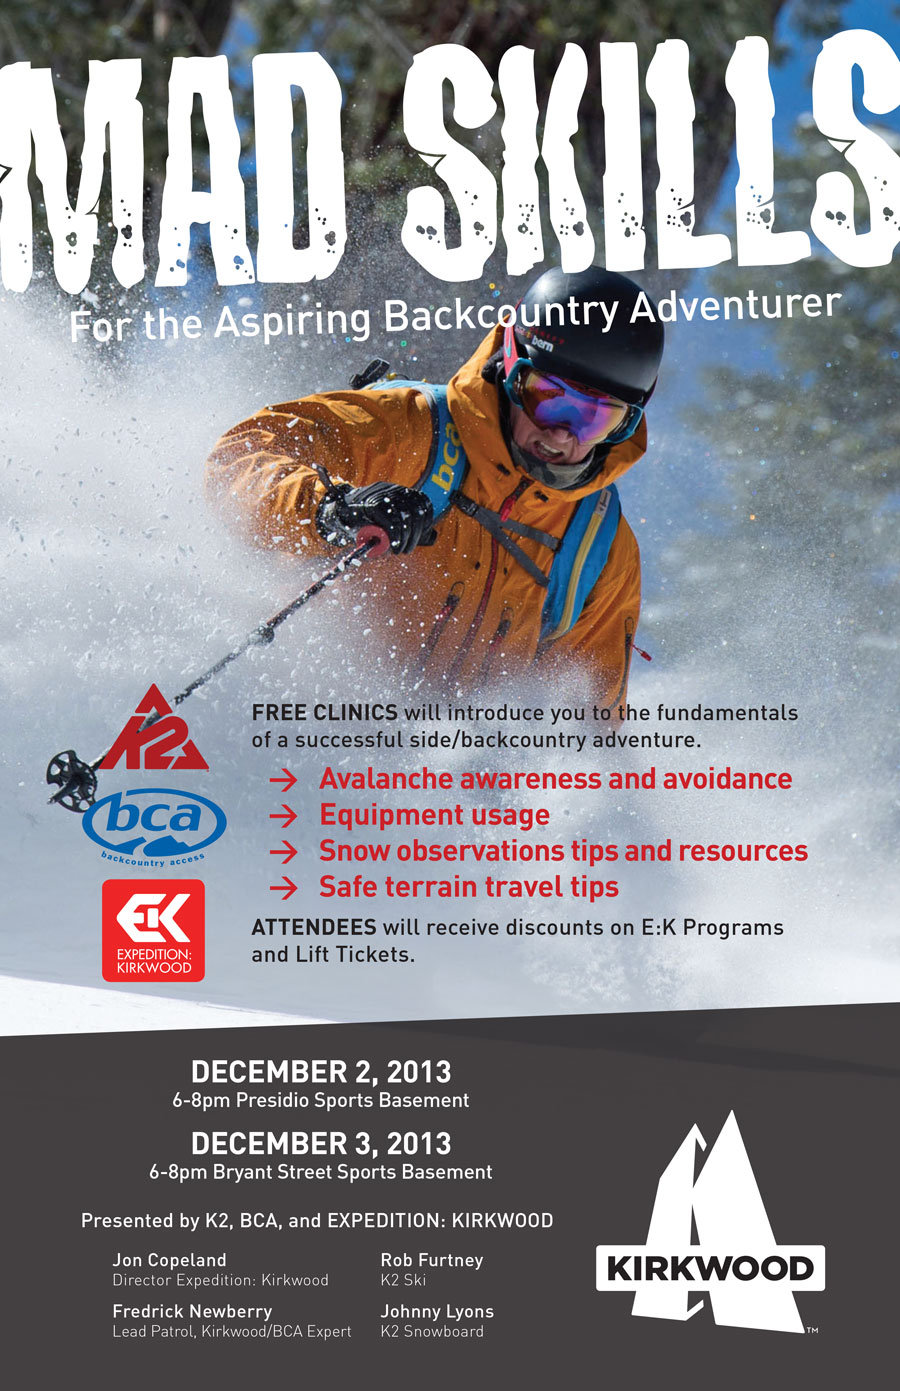 Learn some of the backcountry basics at Sports Basement in San Francisco on Dec 2nd and 3rd. - ©Kirkwood